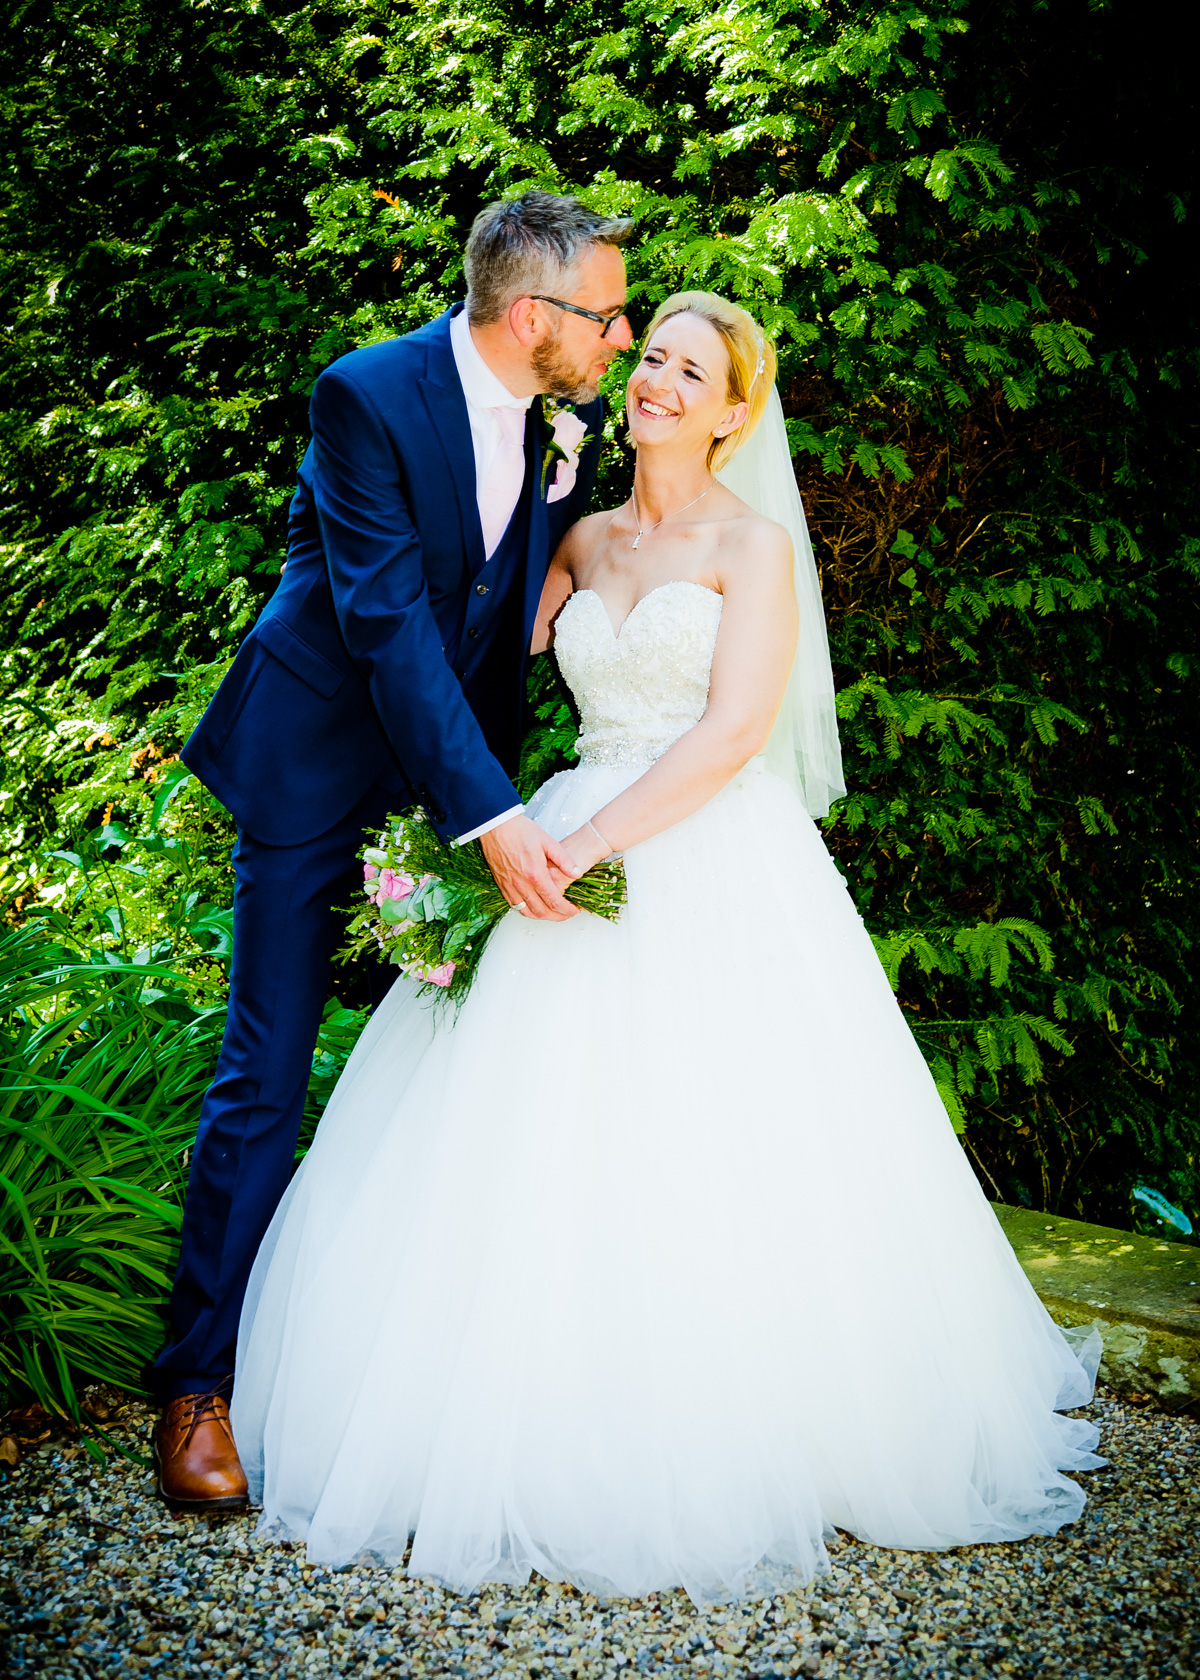 TrueWeddingPhotos.com-4391